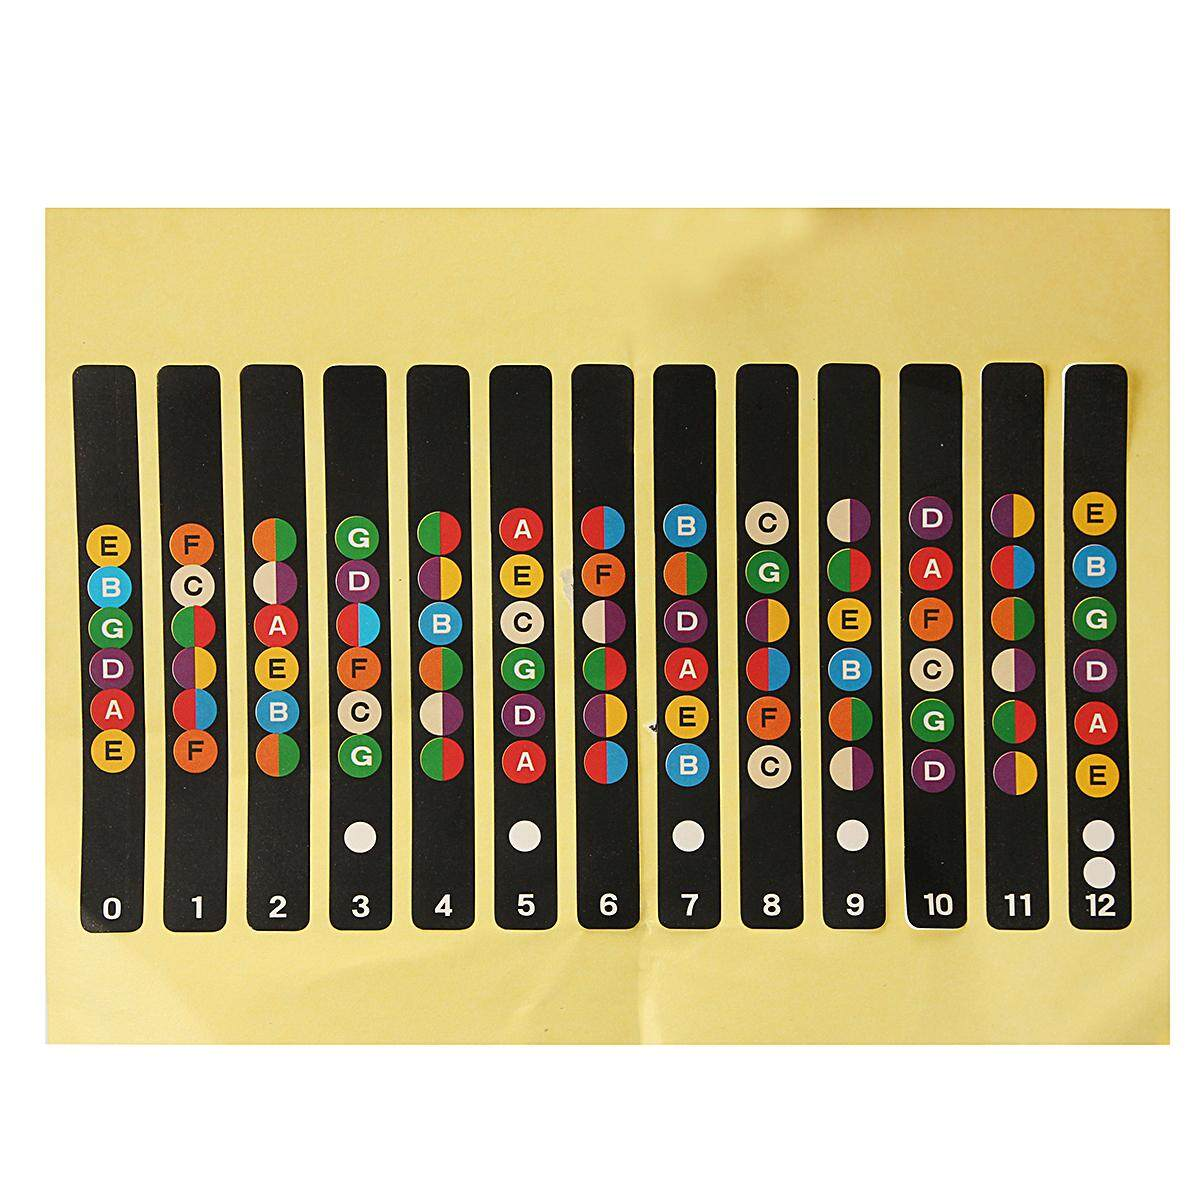 Professional Guitar Scales Sticker Fretboard Note Map Strips Decal Train Learner - 3